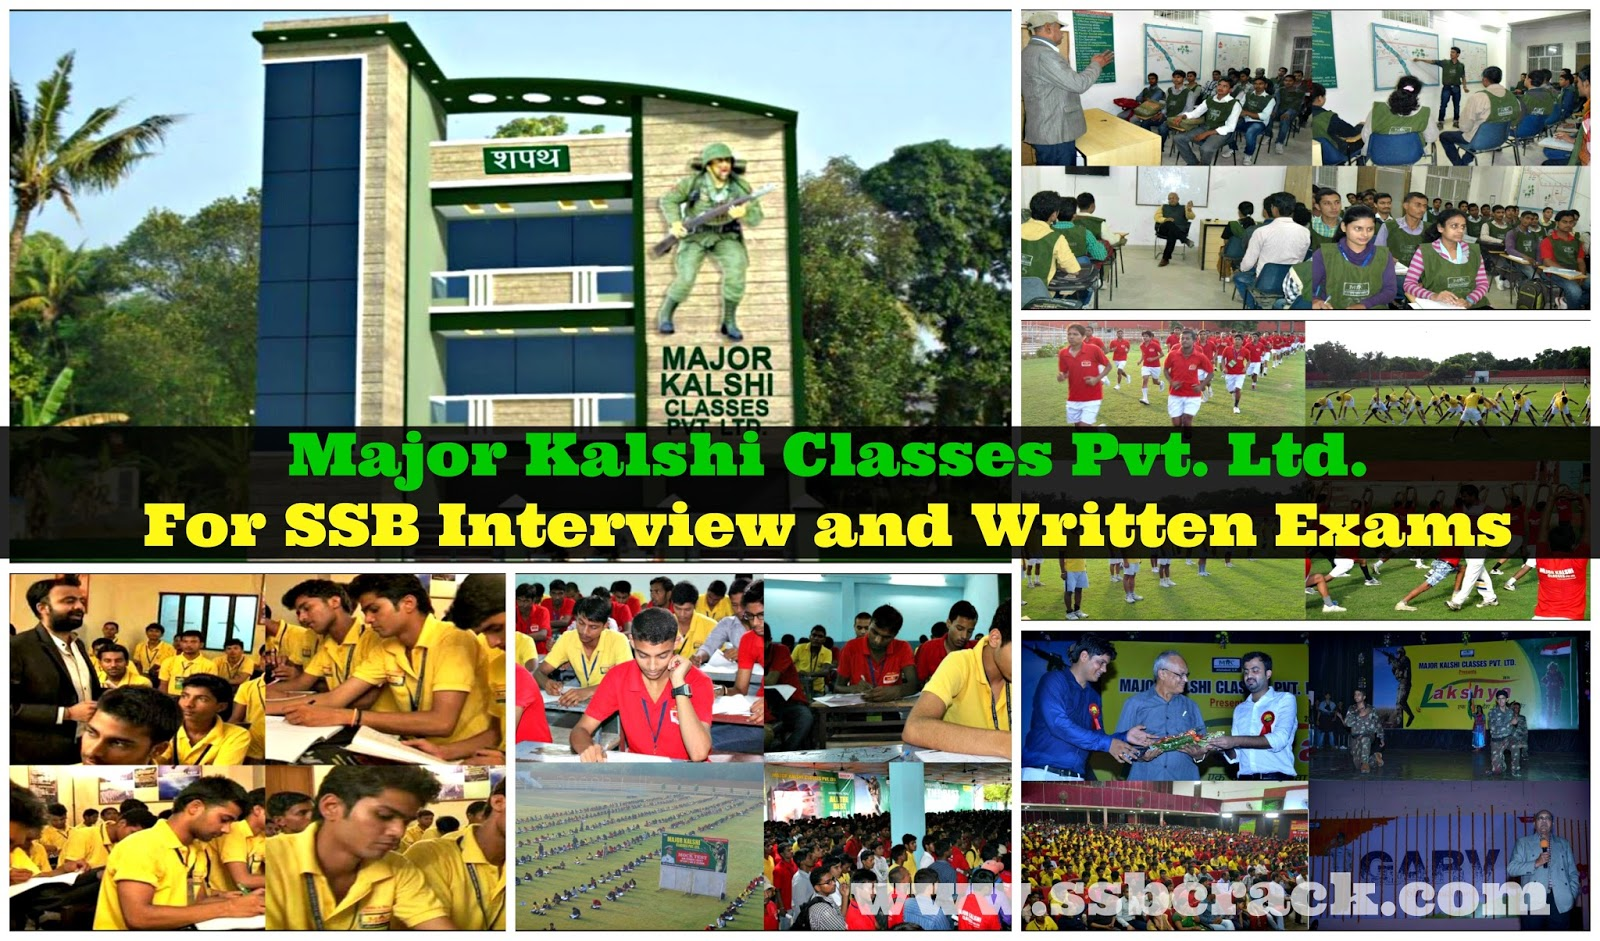 Major Kalshi Classes Pvt. Ltd. For SSB Interview and Written Exams